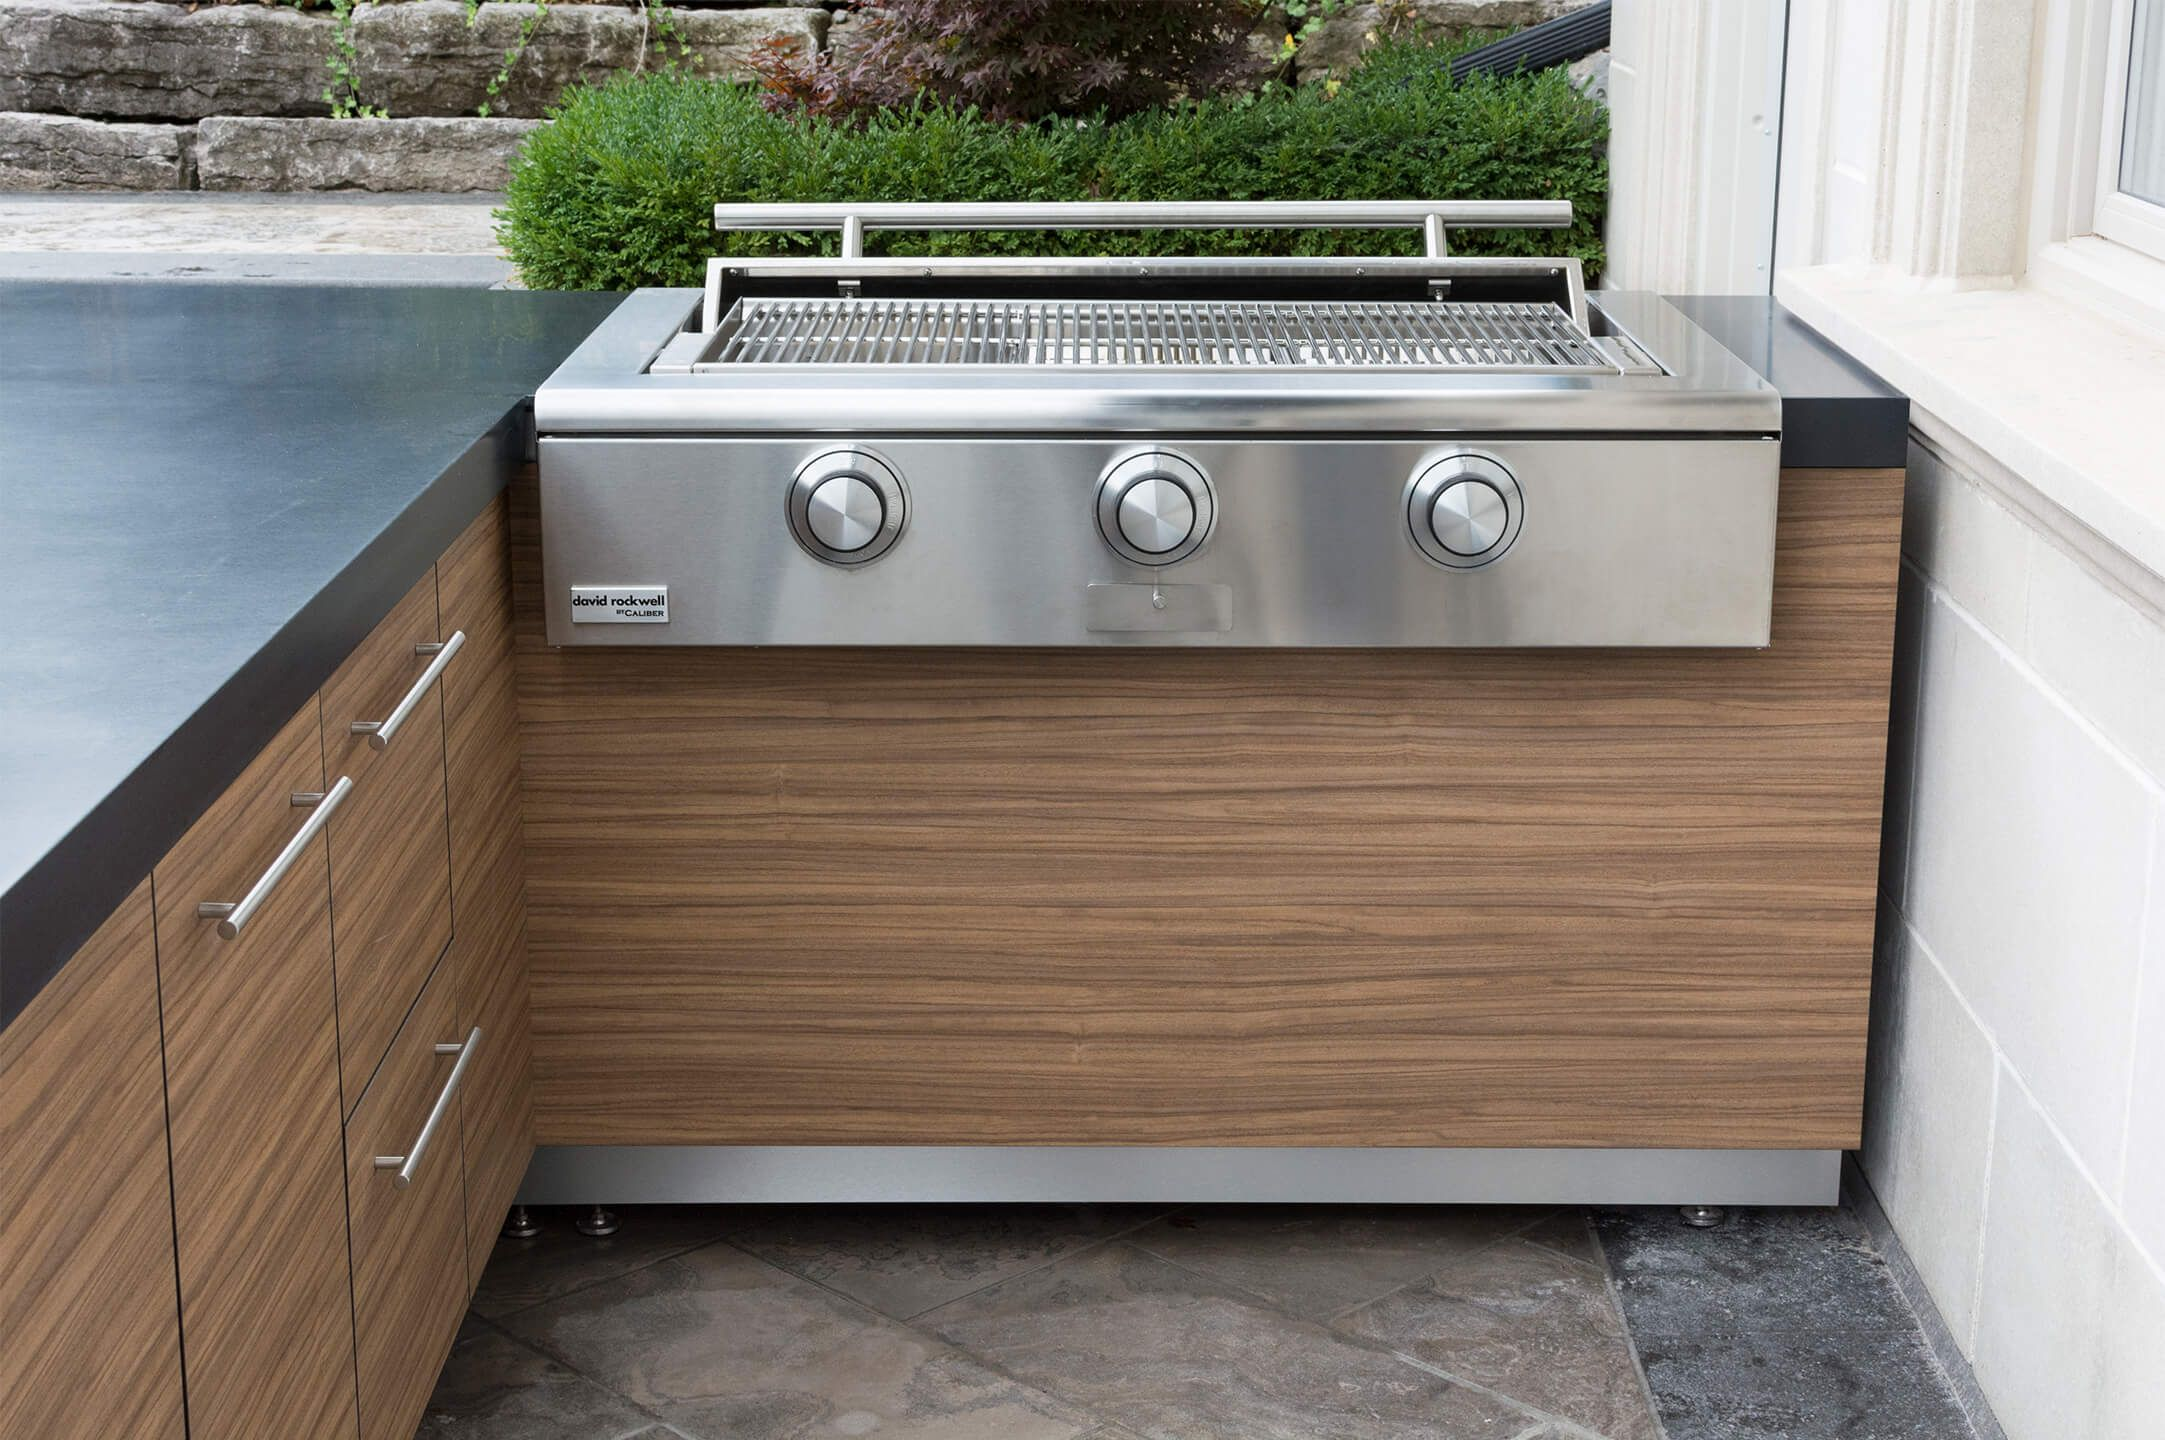 Caliber Rockwell 48 Built In Grill With Stainless Steel Kickplate Outdoor Kitchen Built In Grill Outdoor Kitchen Appliances